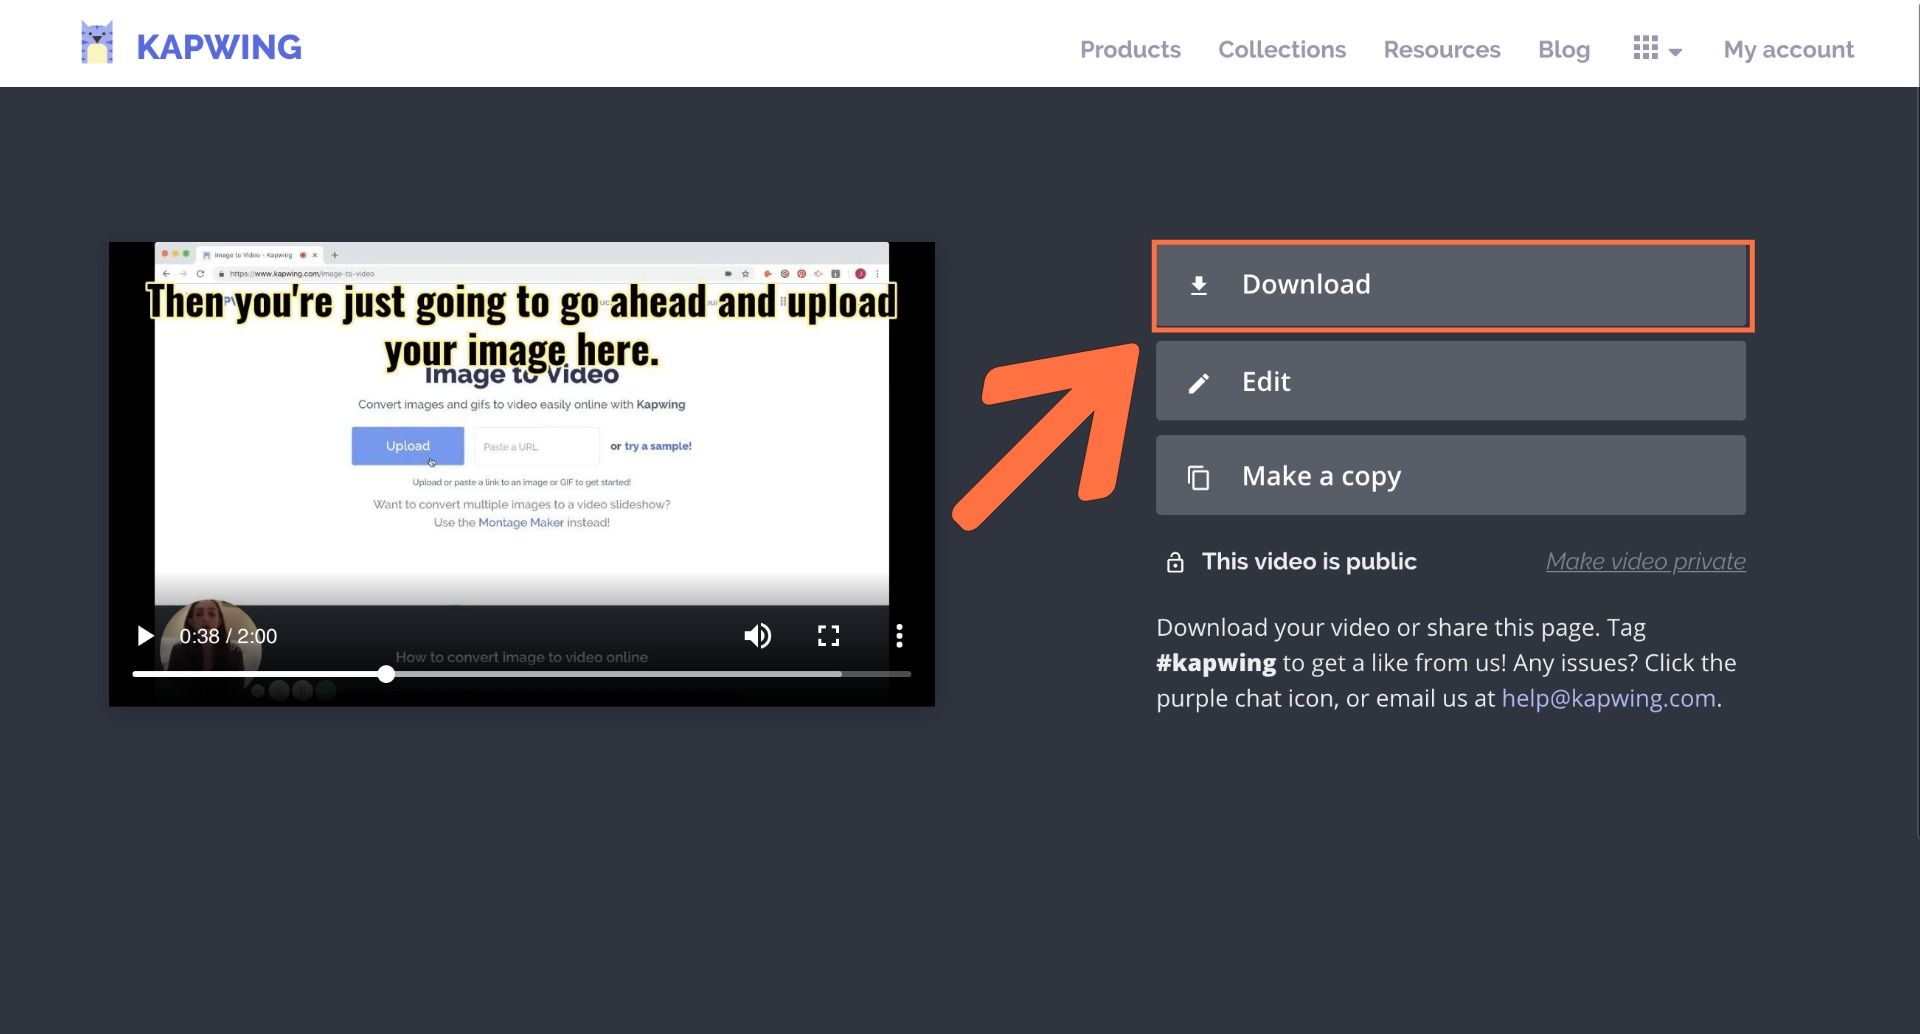 A screenshot showing how to download content from Kapwing.